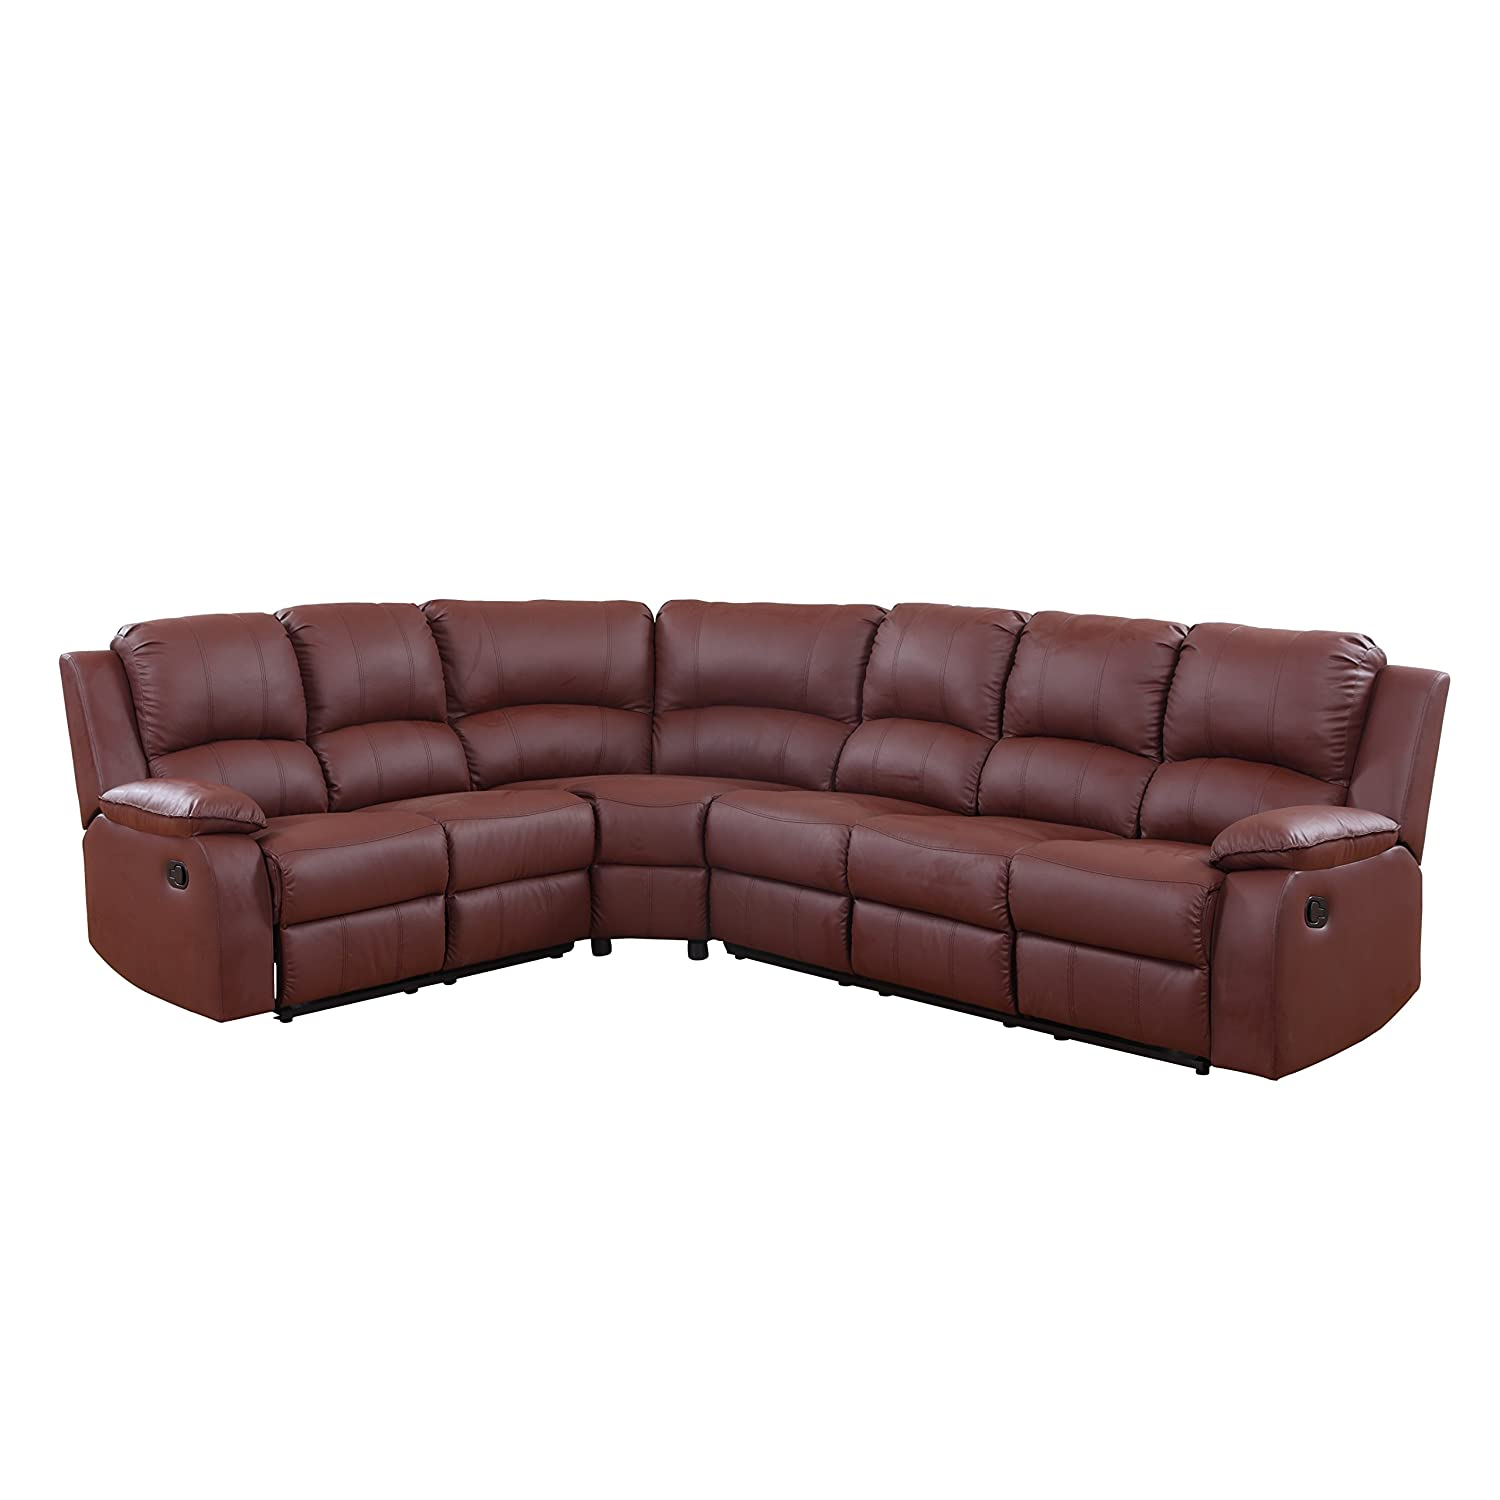 Amazon Classic and Traditional Brown Bonded Leather